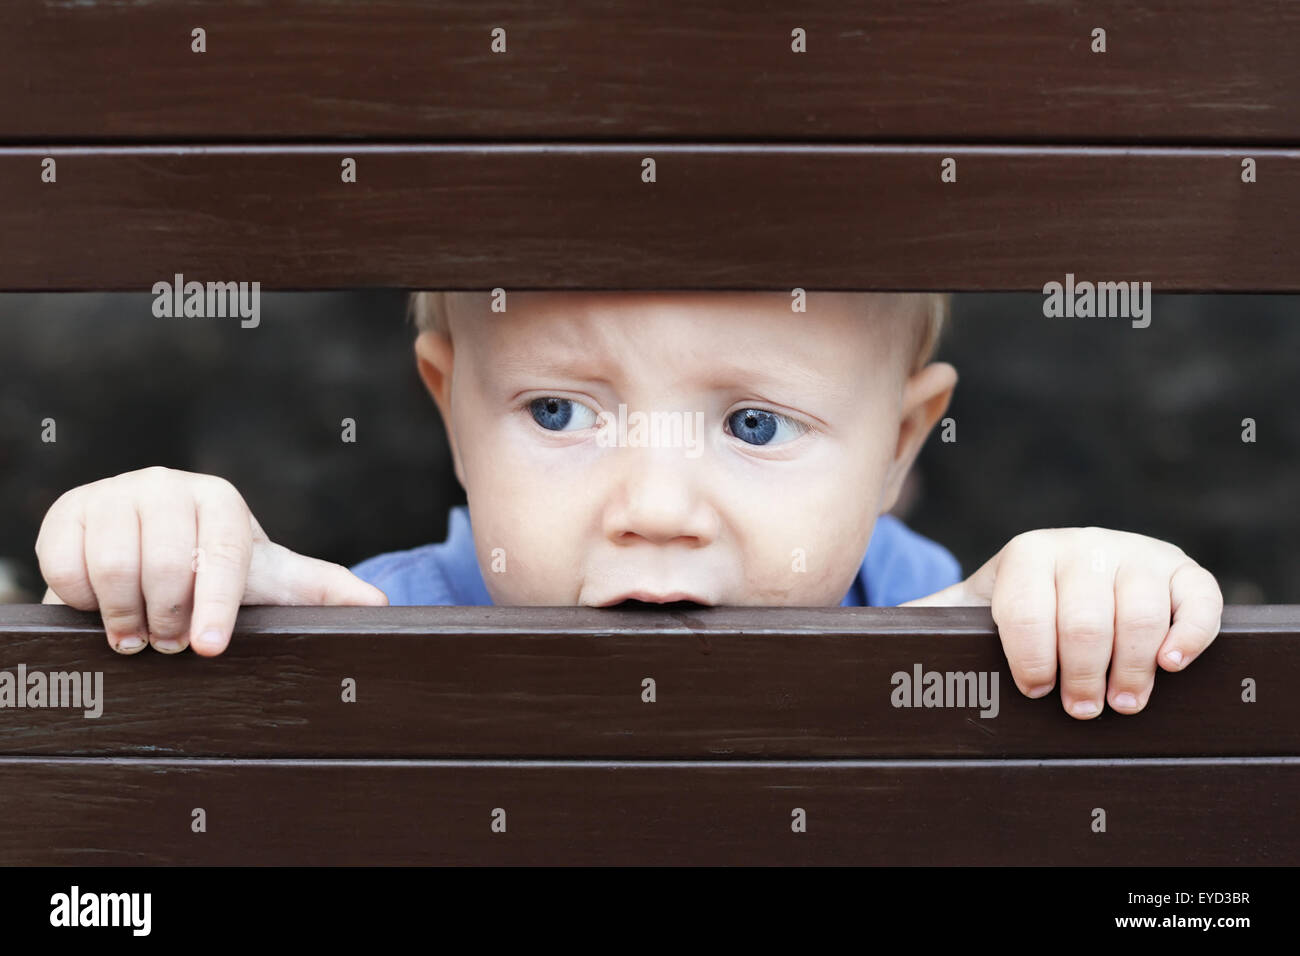 sad baby stock photos & sad baby stock images - alamy